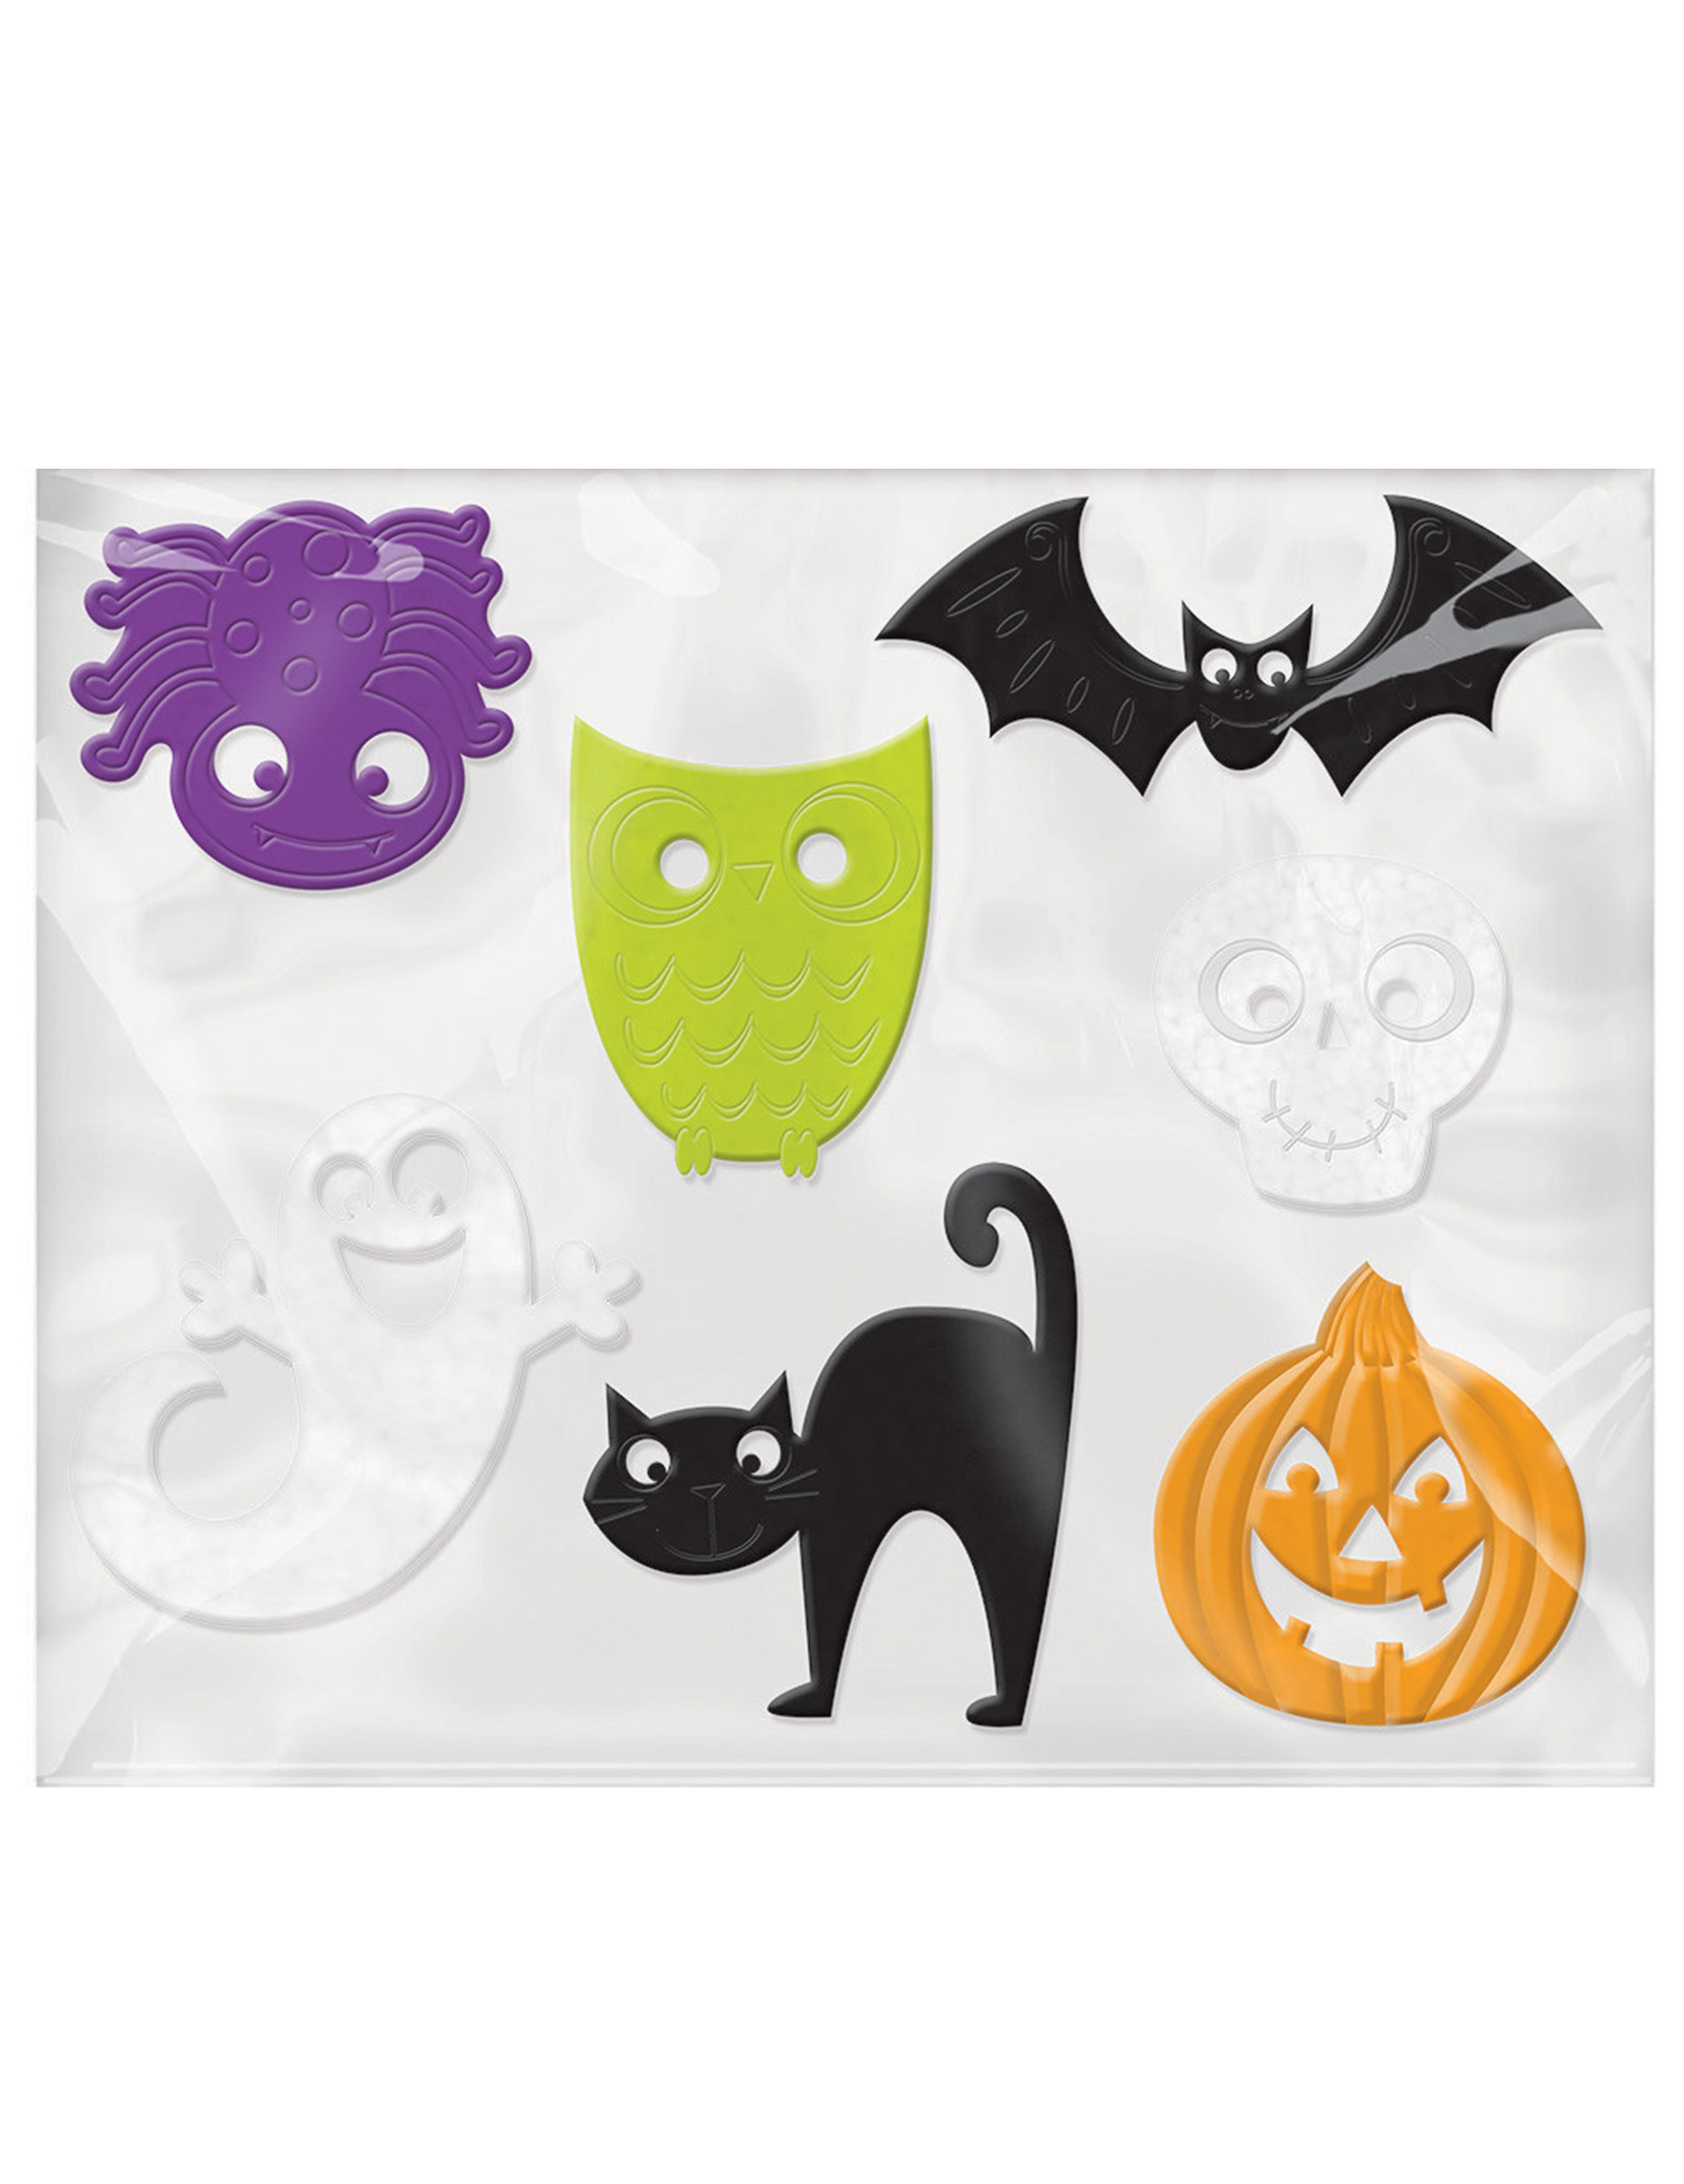 Fensterdekorationen Halloween Deko Fur Kinder 7 Stuck Bunt 5 Bis